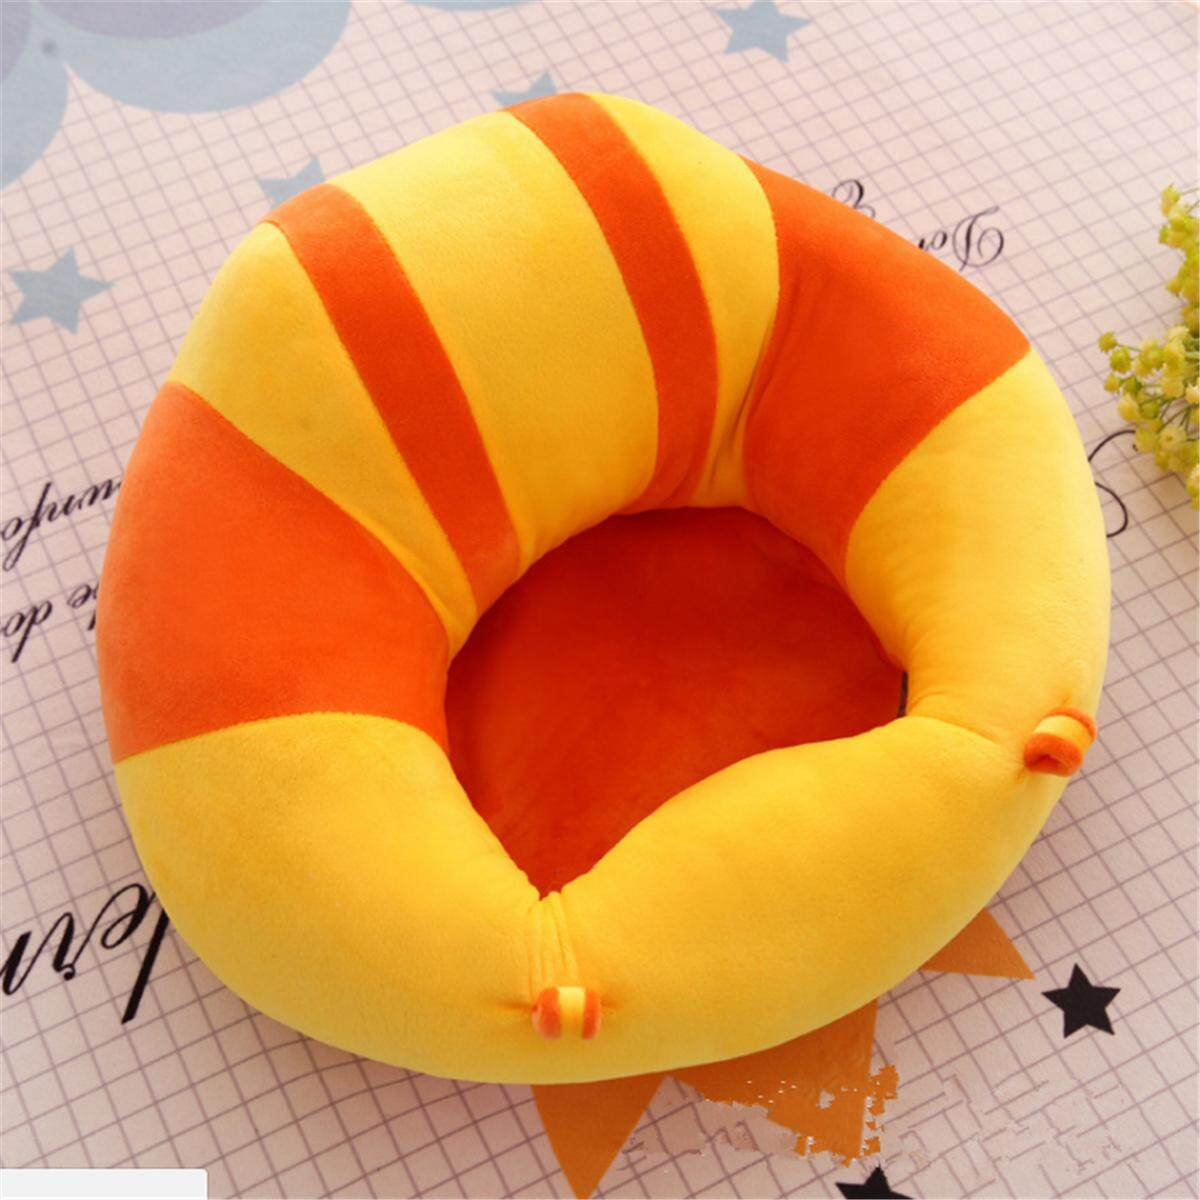 Baby Sofa Seat Learn Sit Feeding Chair Children Kids Sleeping Plush Cushion Toy # Orang+yellow - intl